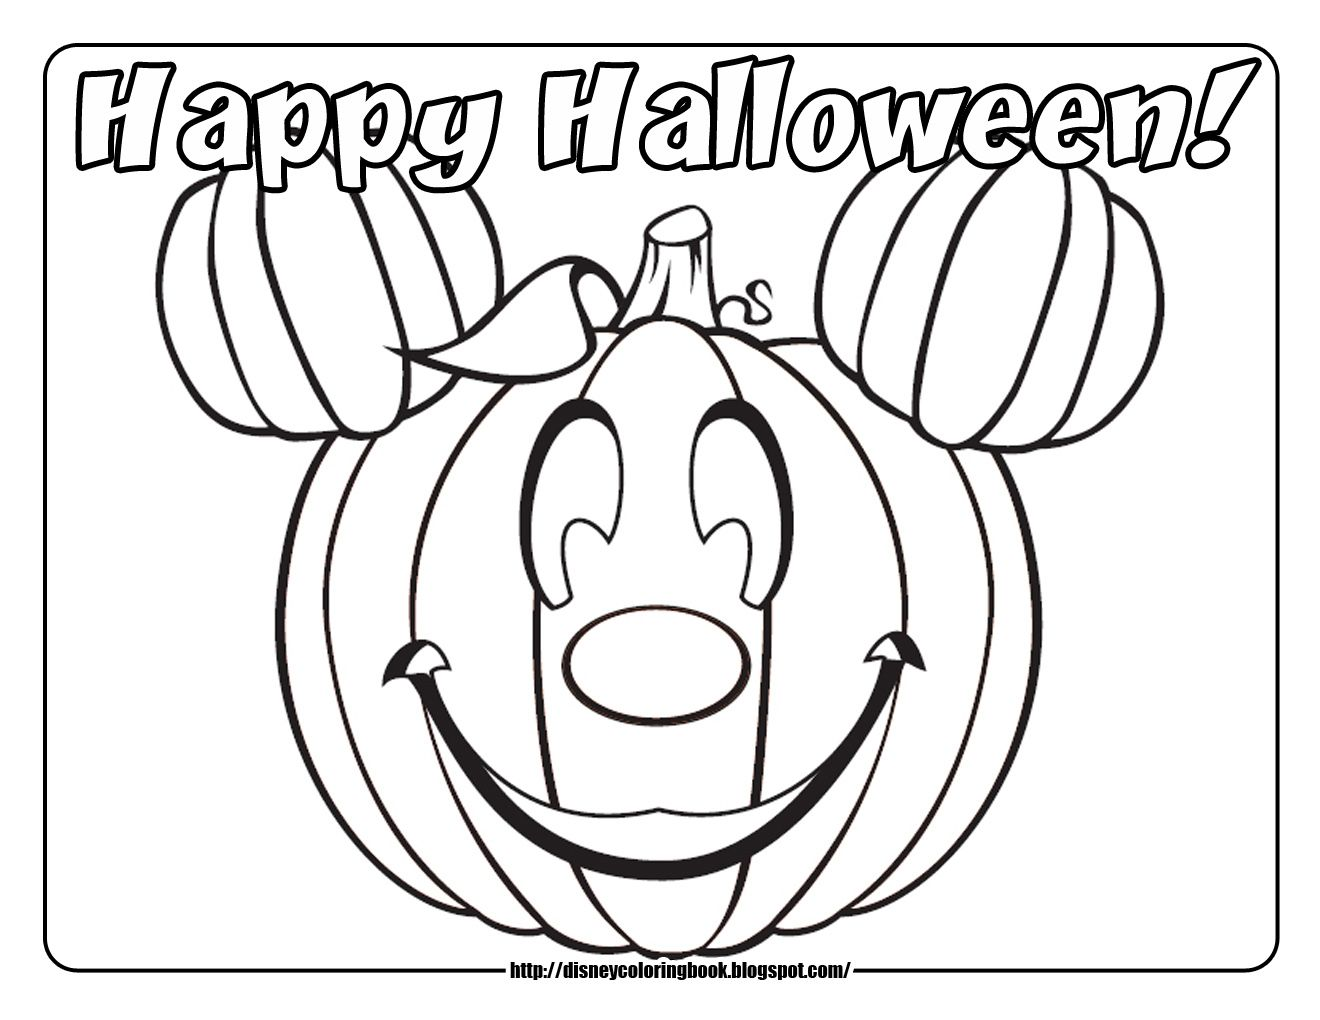 Halloween Coloring Pages Mickey Pumpkin Jpg 1 320 1 020 Pixels Halloween Coloring Pages Printable Free Halloween Coloring Pages Pumpkin Coloring Pages